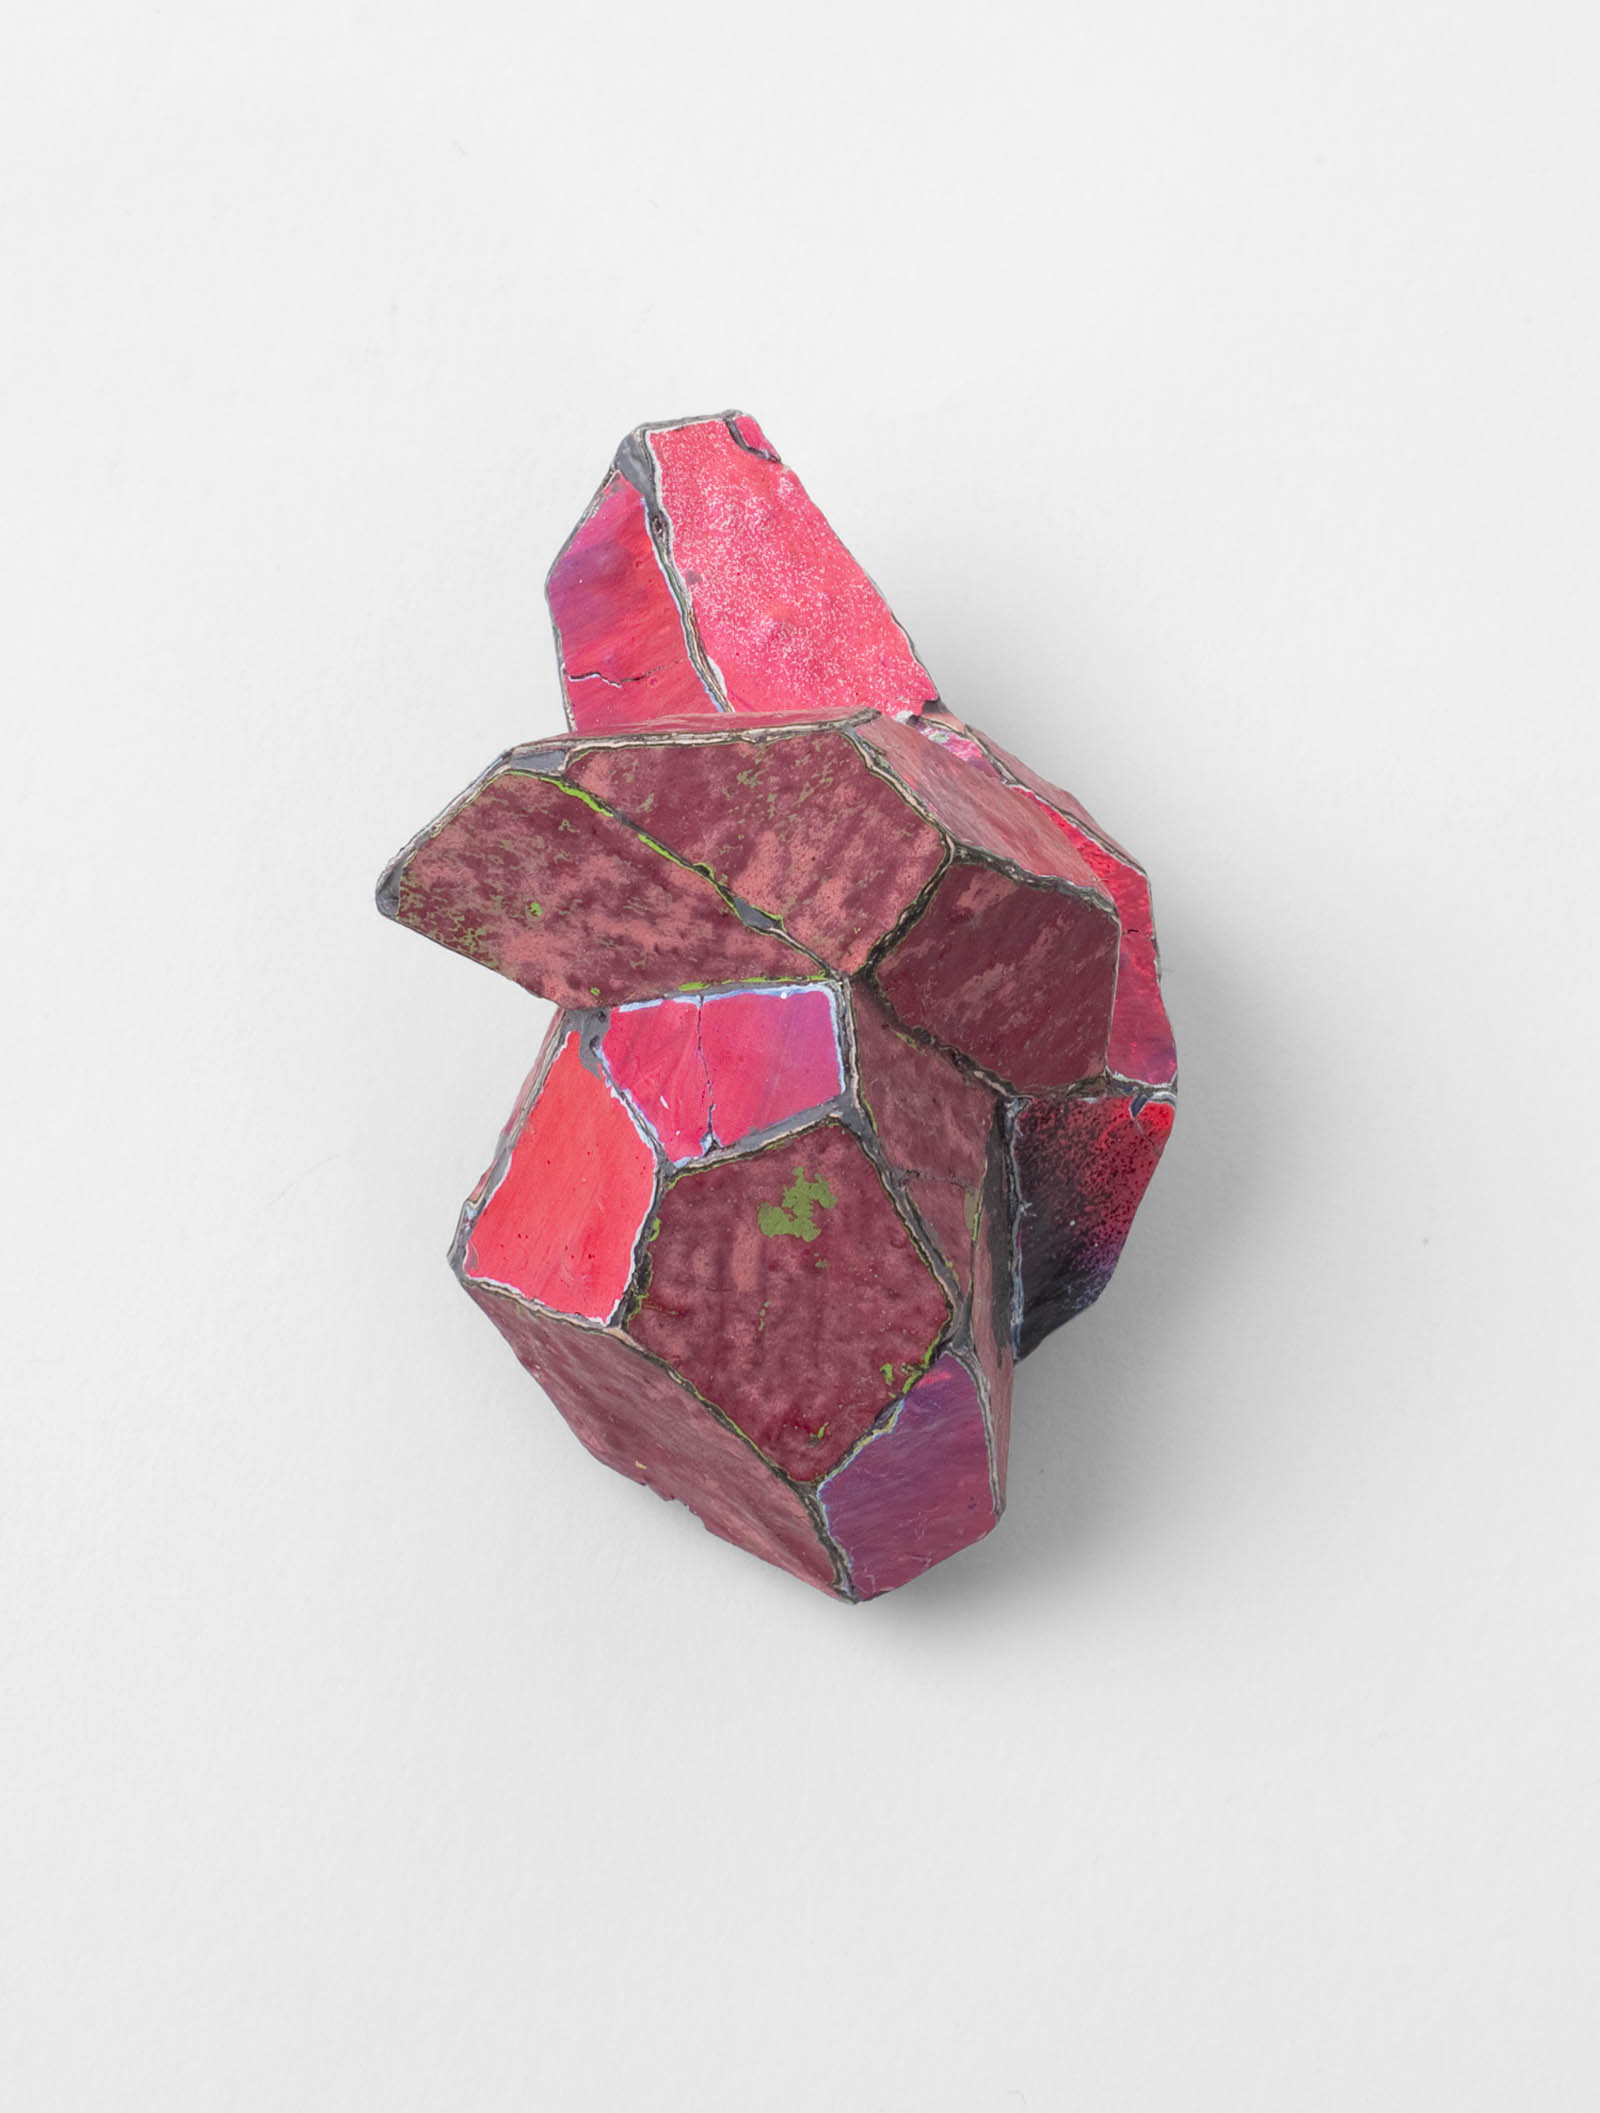 """Pink"" I Brooch, 2012 I Graffiti, silver, stainless steel I Photo: Mirei Takeuchi"